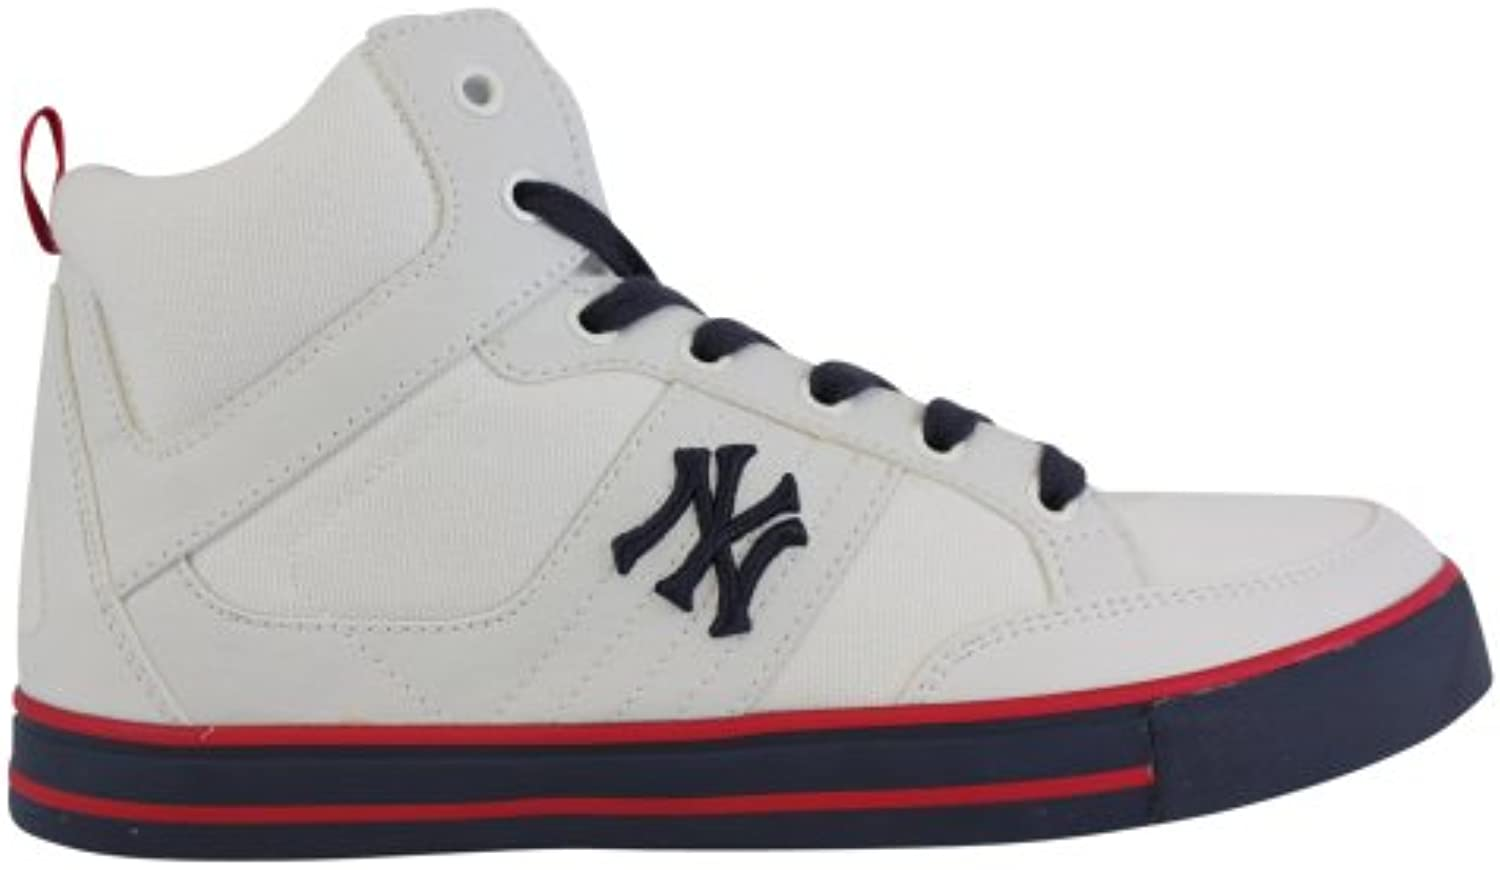 New York Yankees Herren Sneaker   Man Shoes   Schuhe   H13MN07   Weiss   Gr. 42